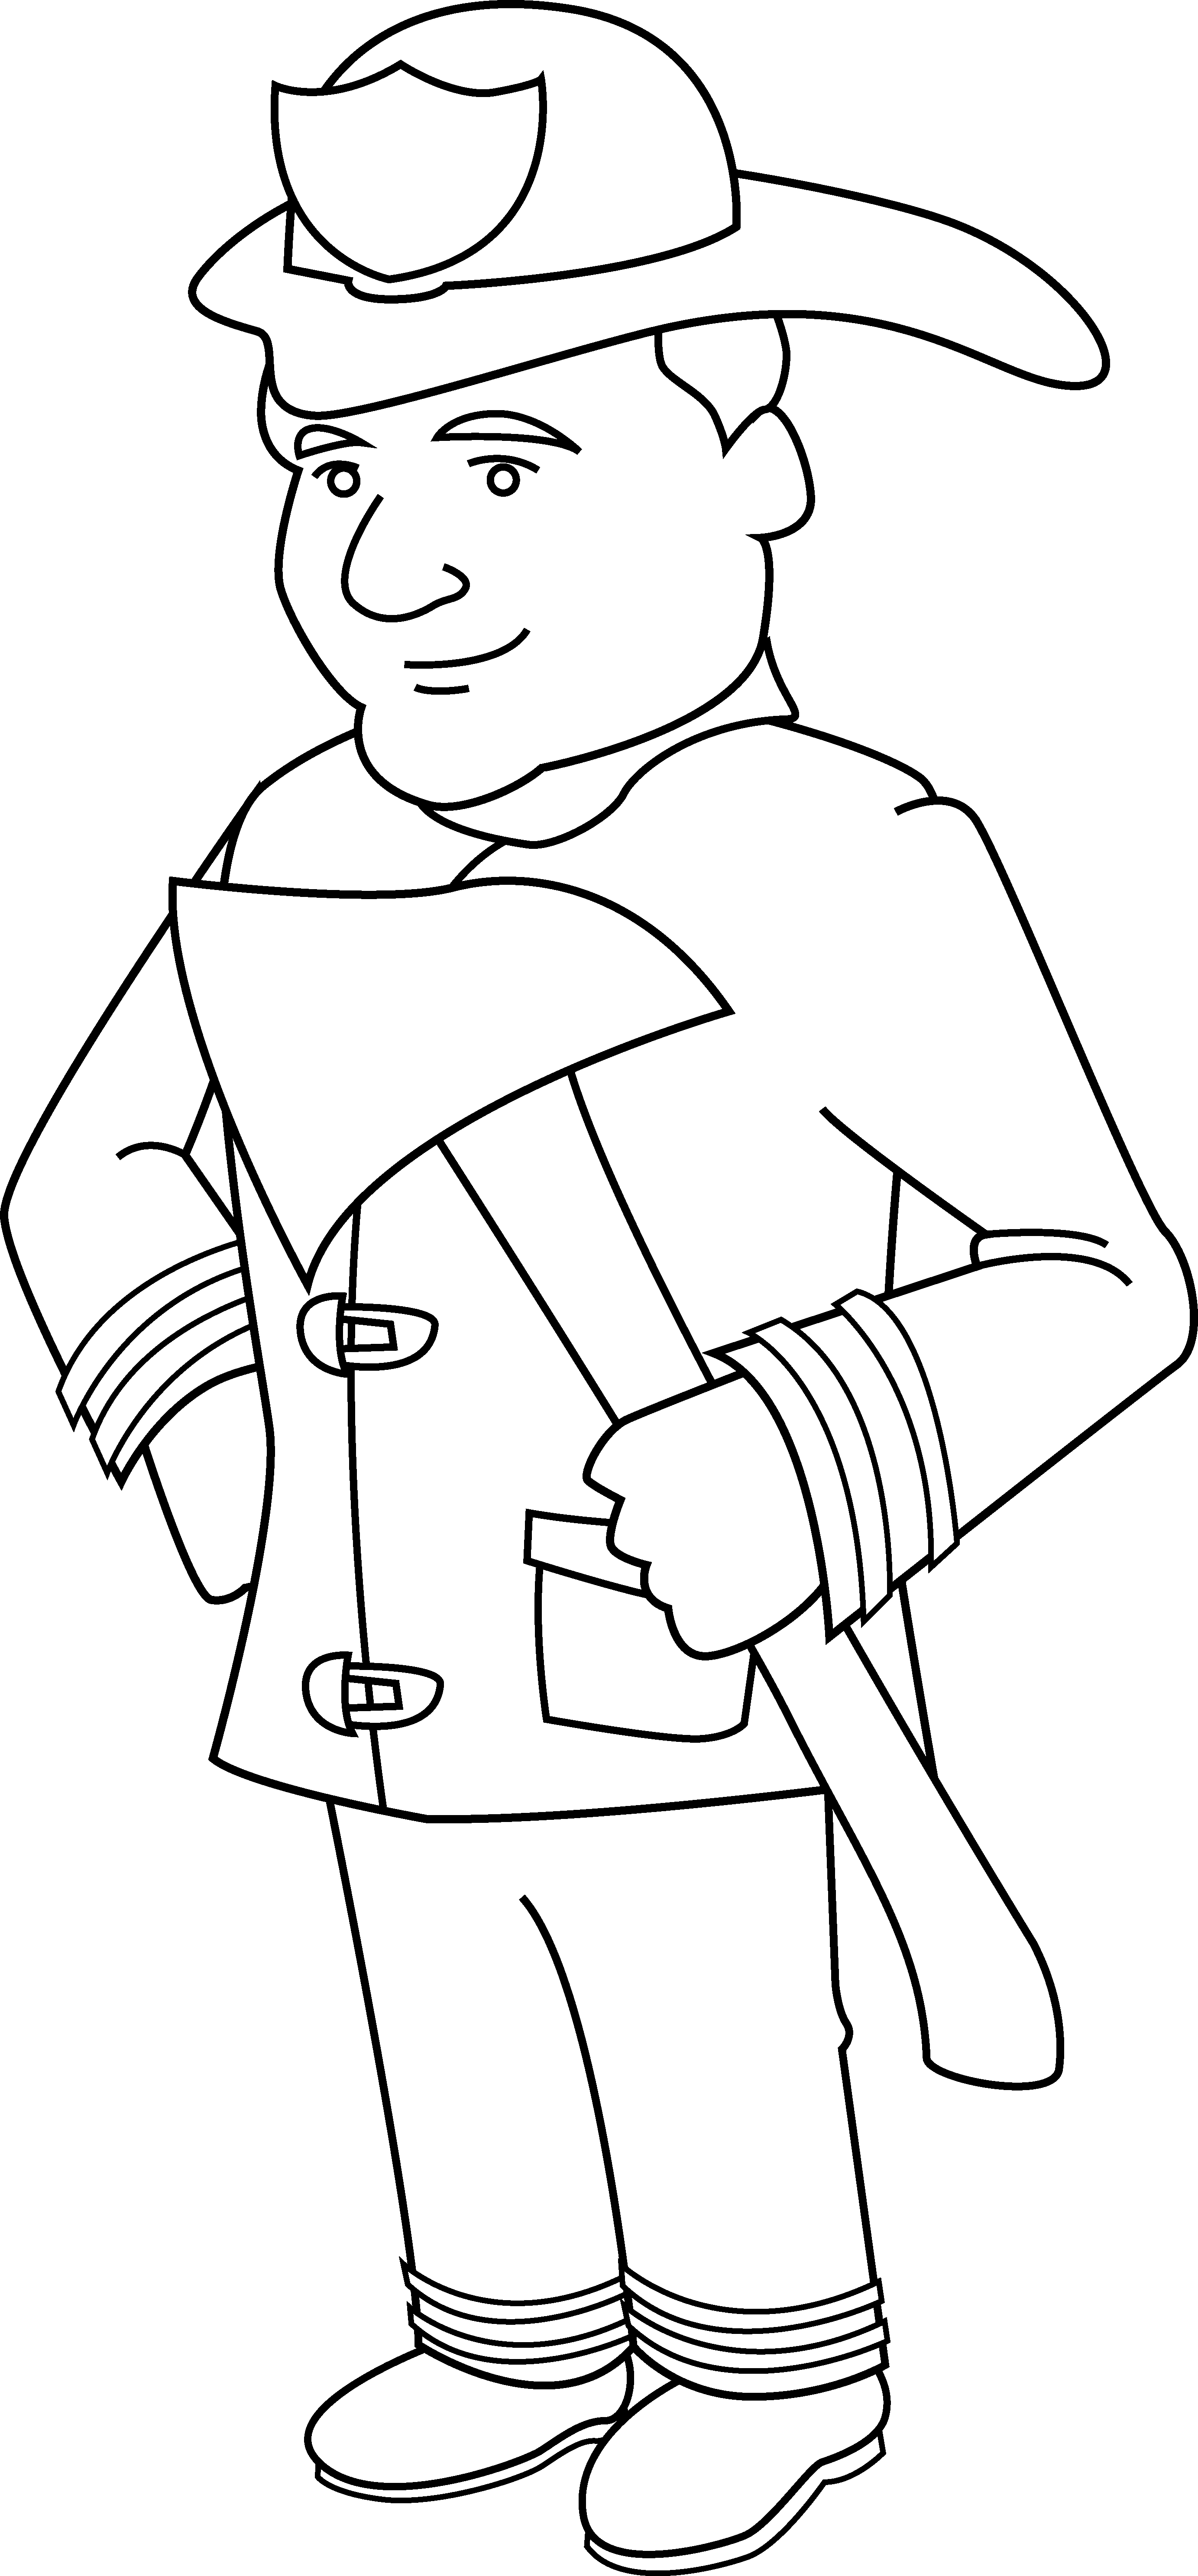 Firefighter clipart male firefighter. Coloring page free clip